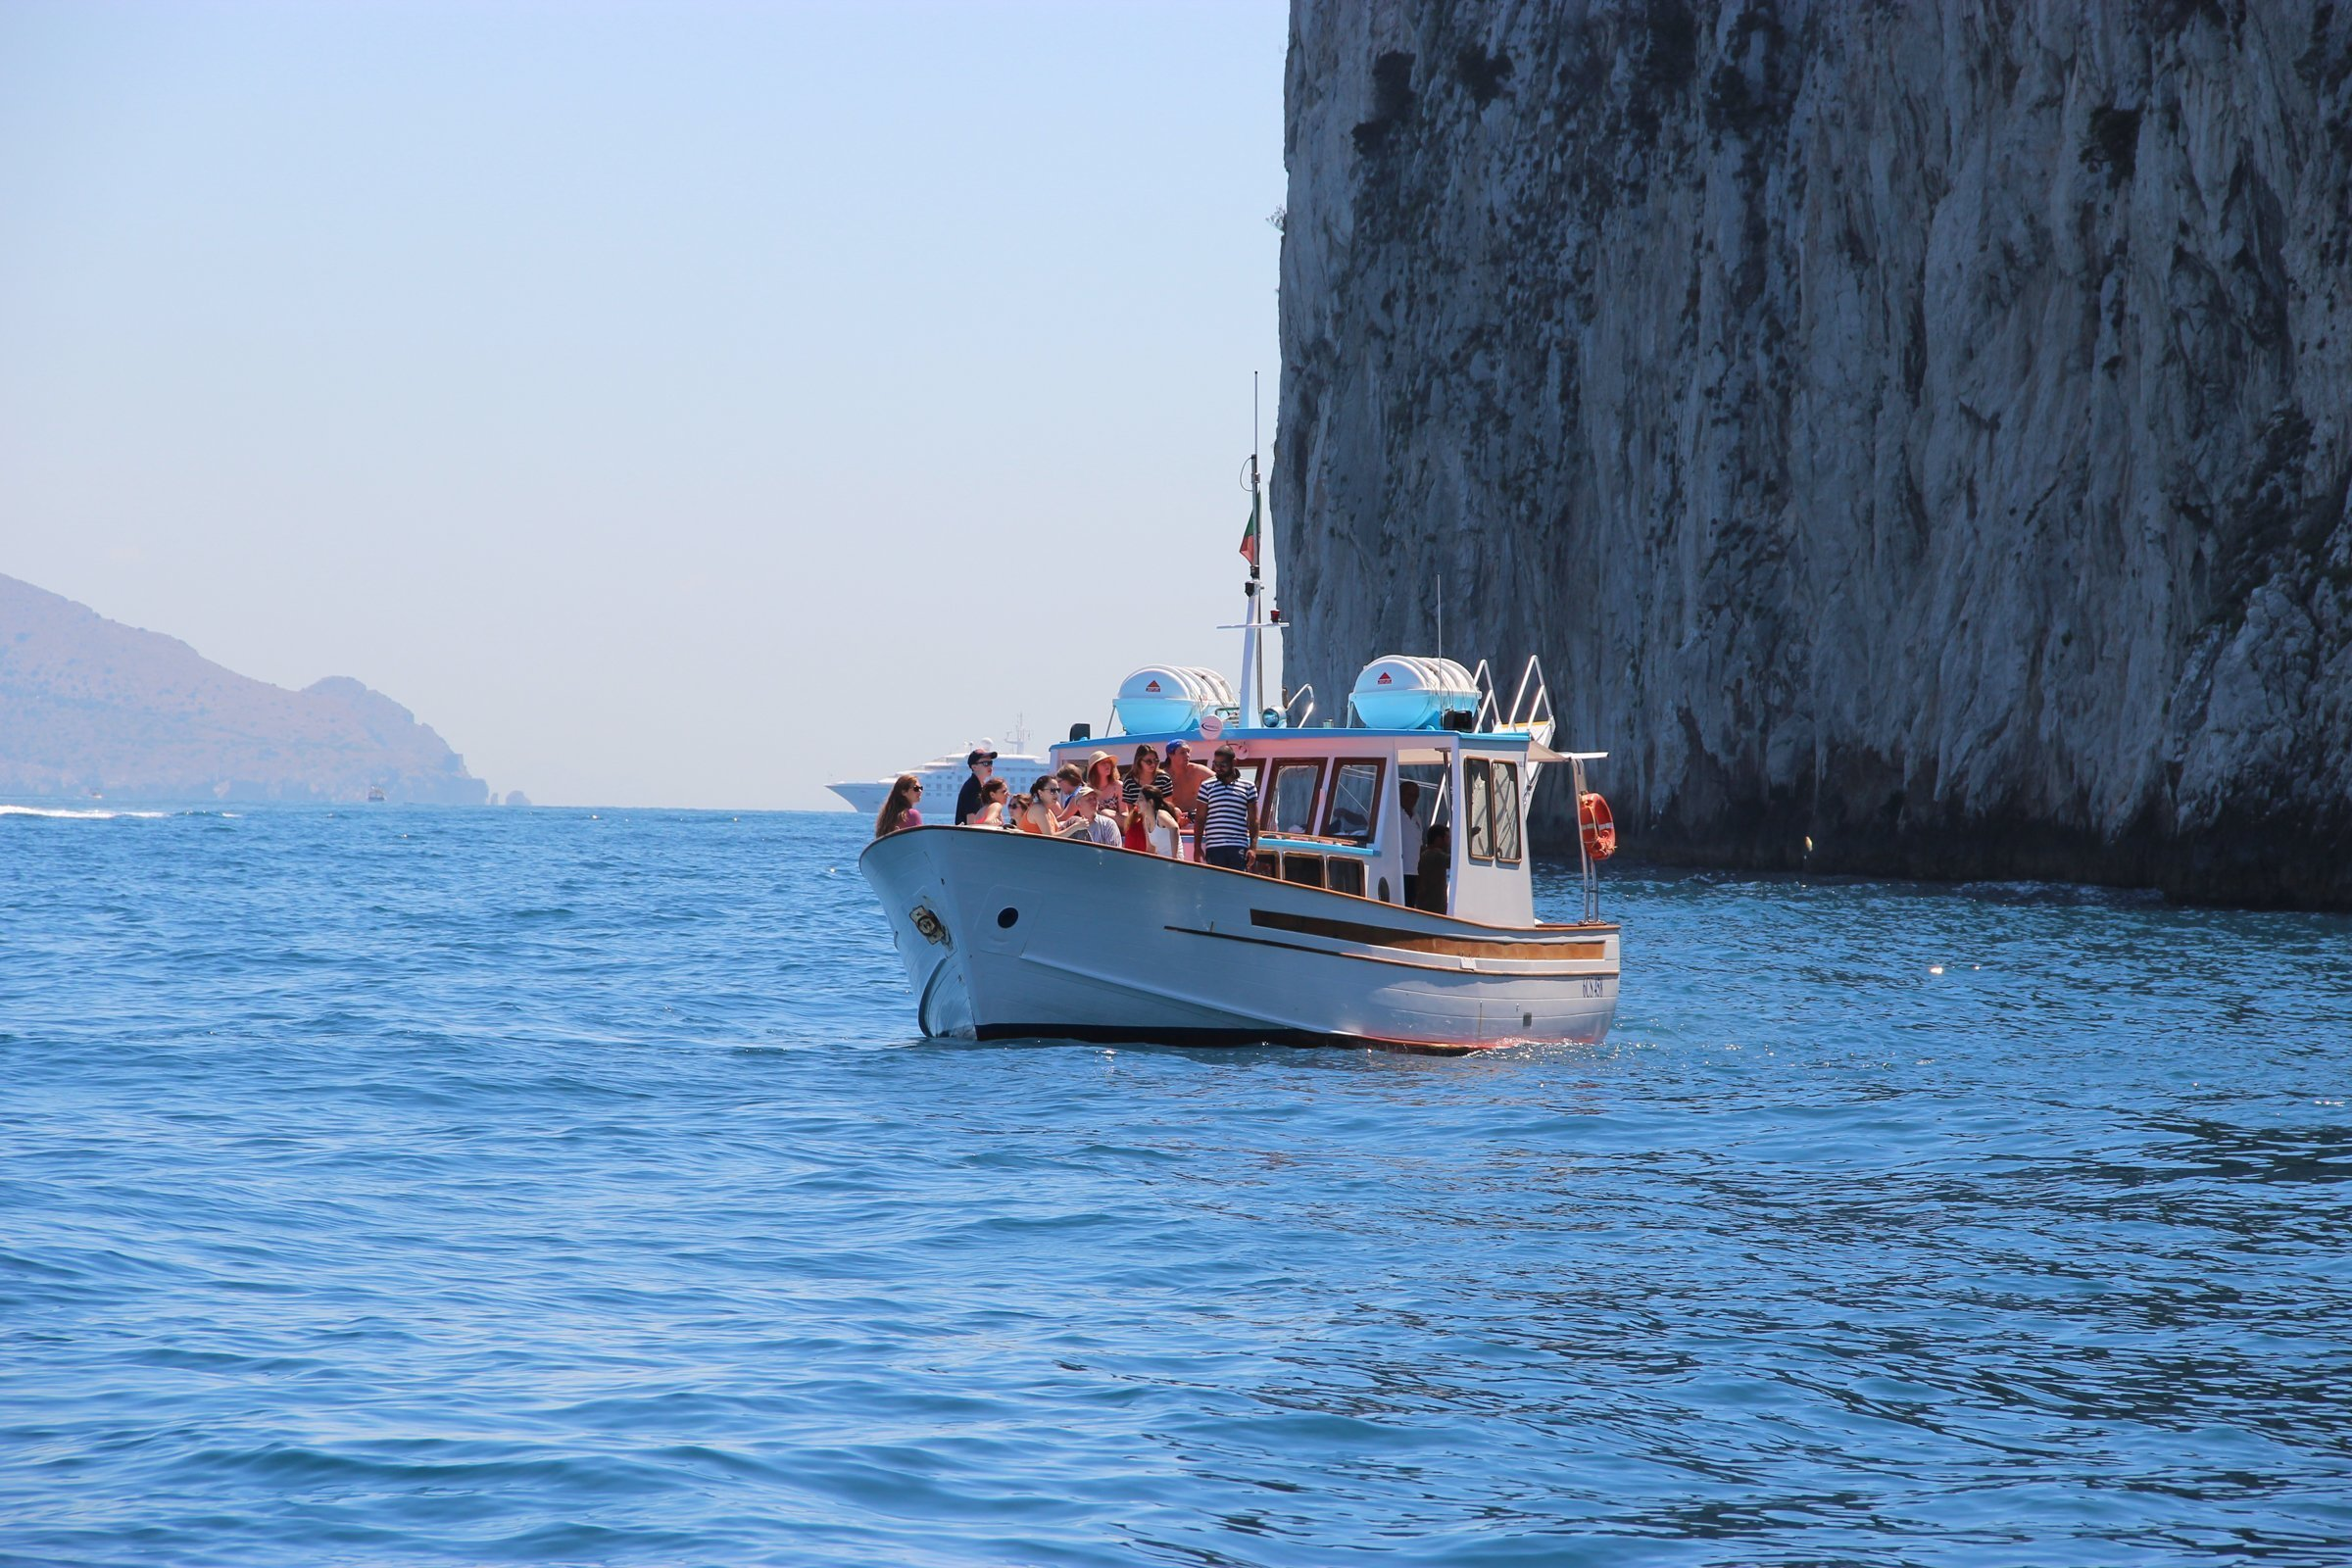 People On Boat In Water Near Cliff